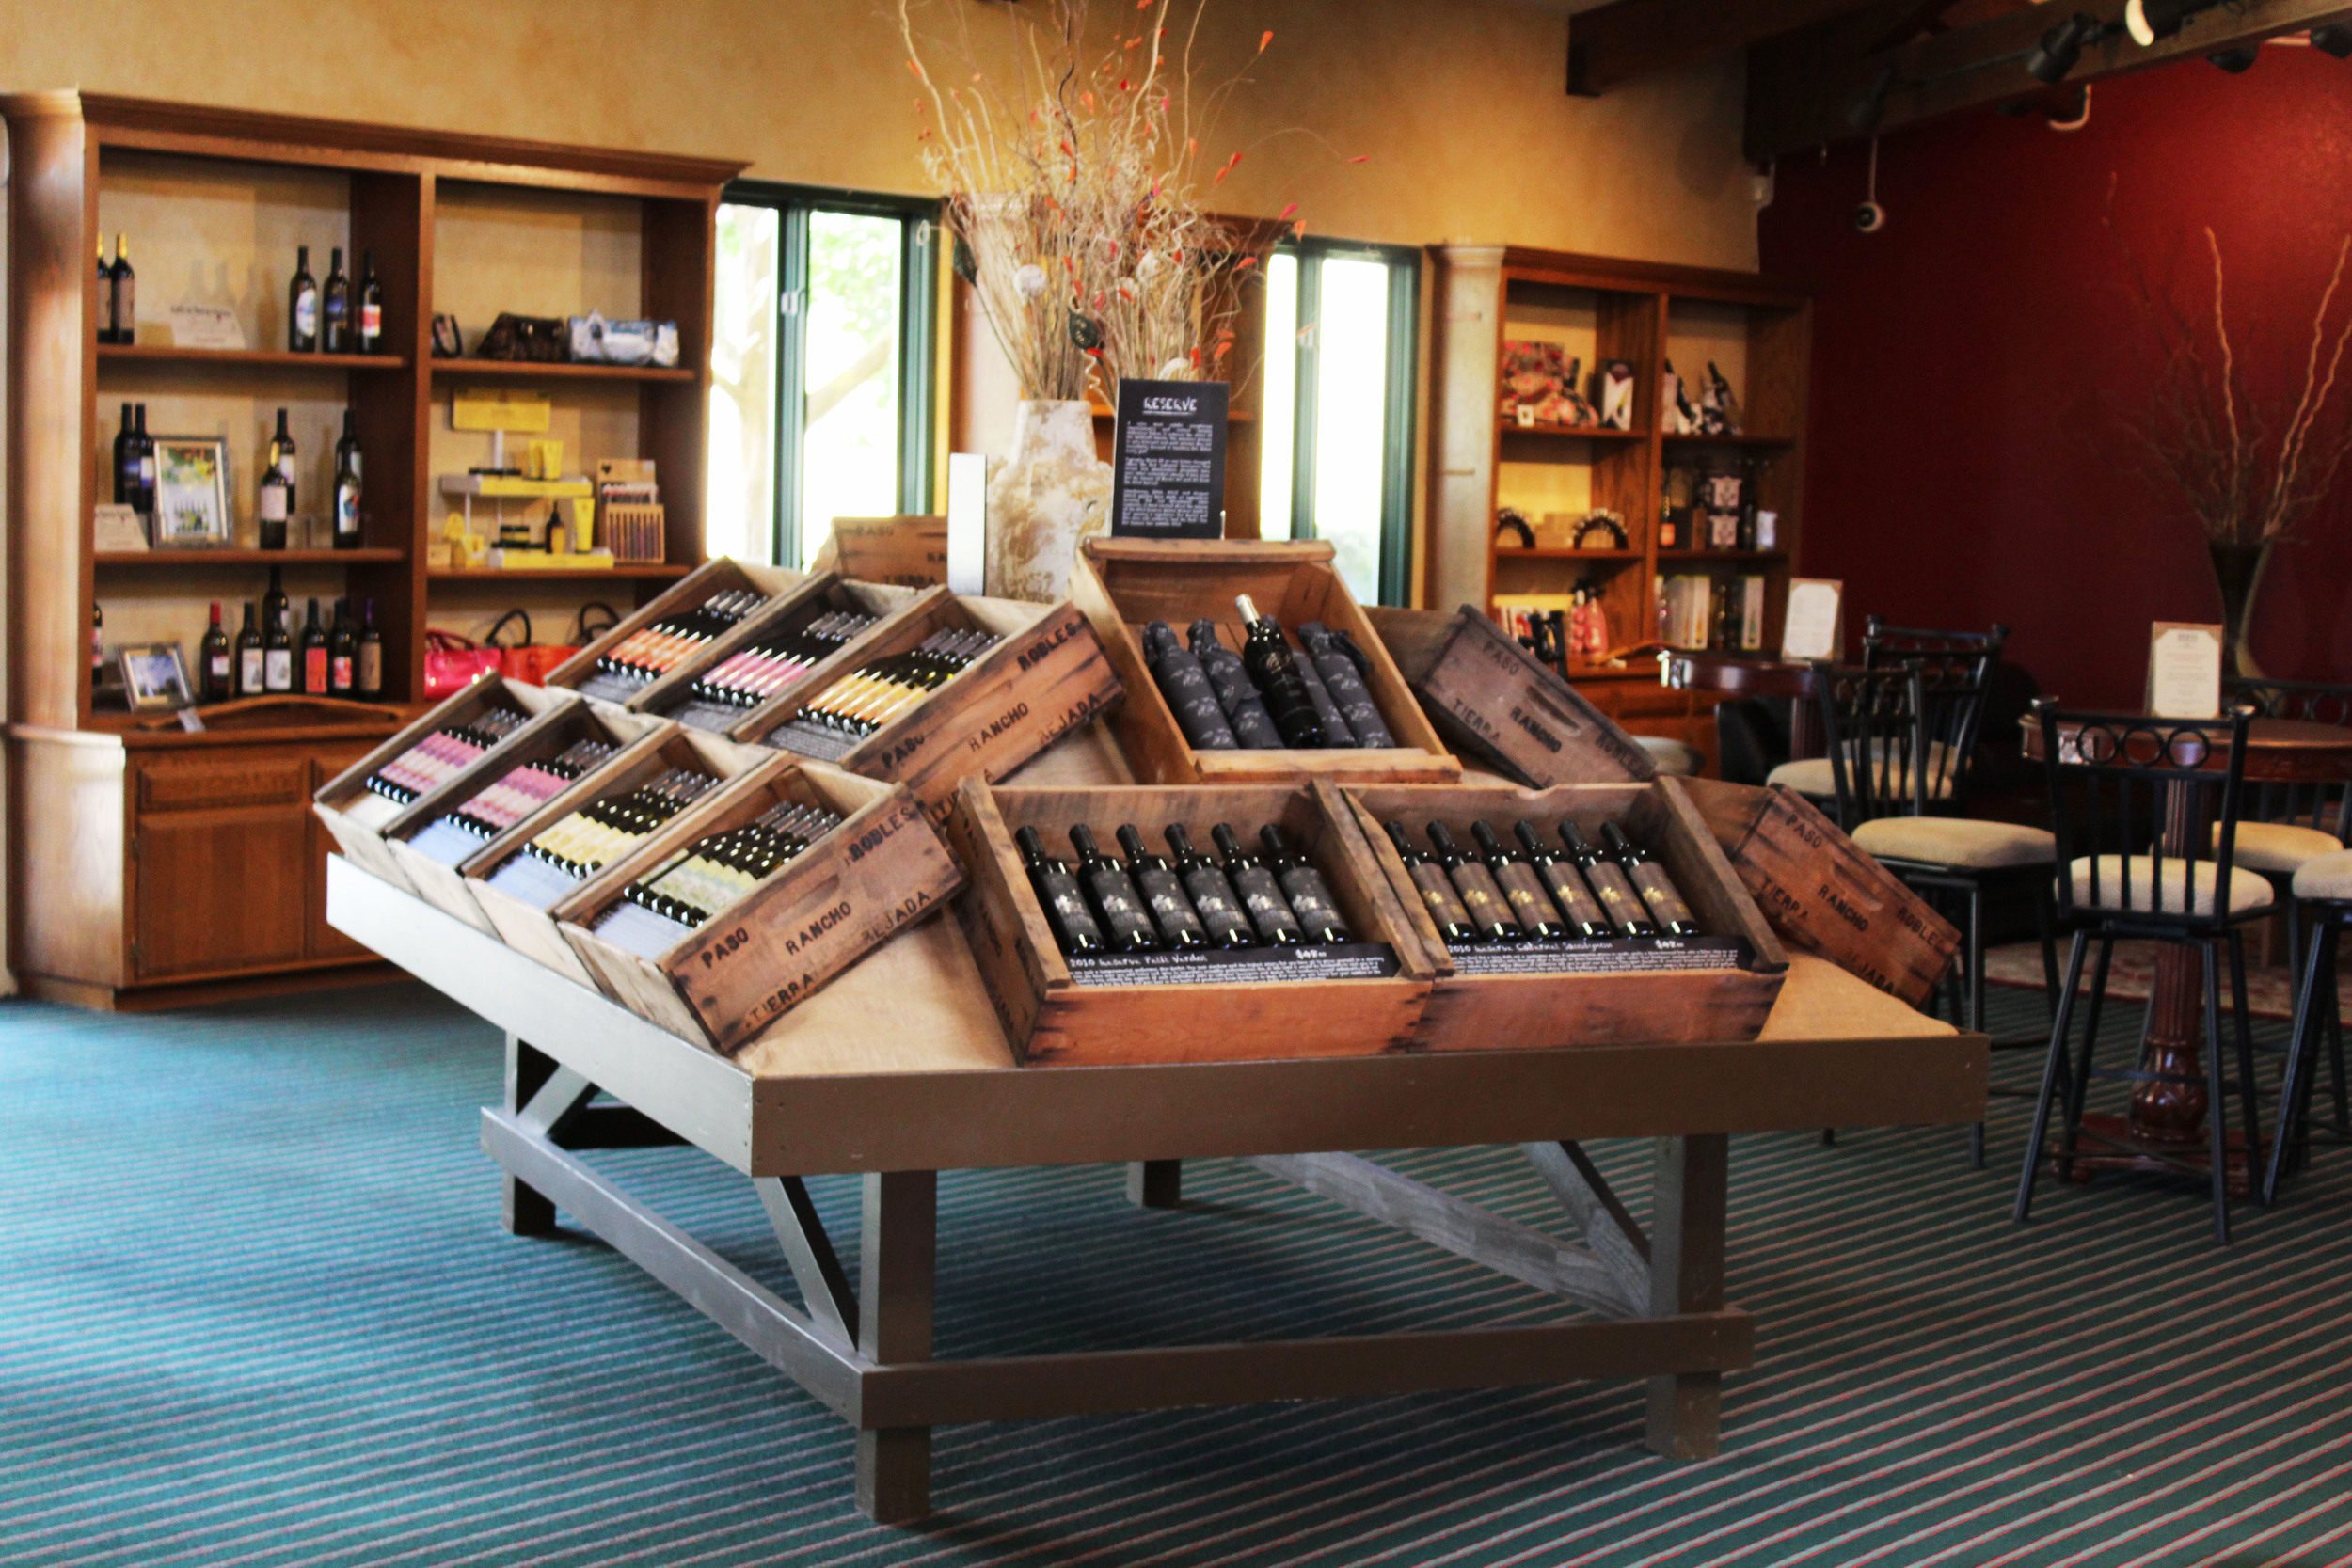 There is a nice collection of Broken Earth's wines and specialty foodstuffs guaranteed to please any palate!